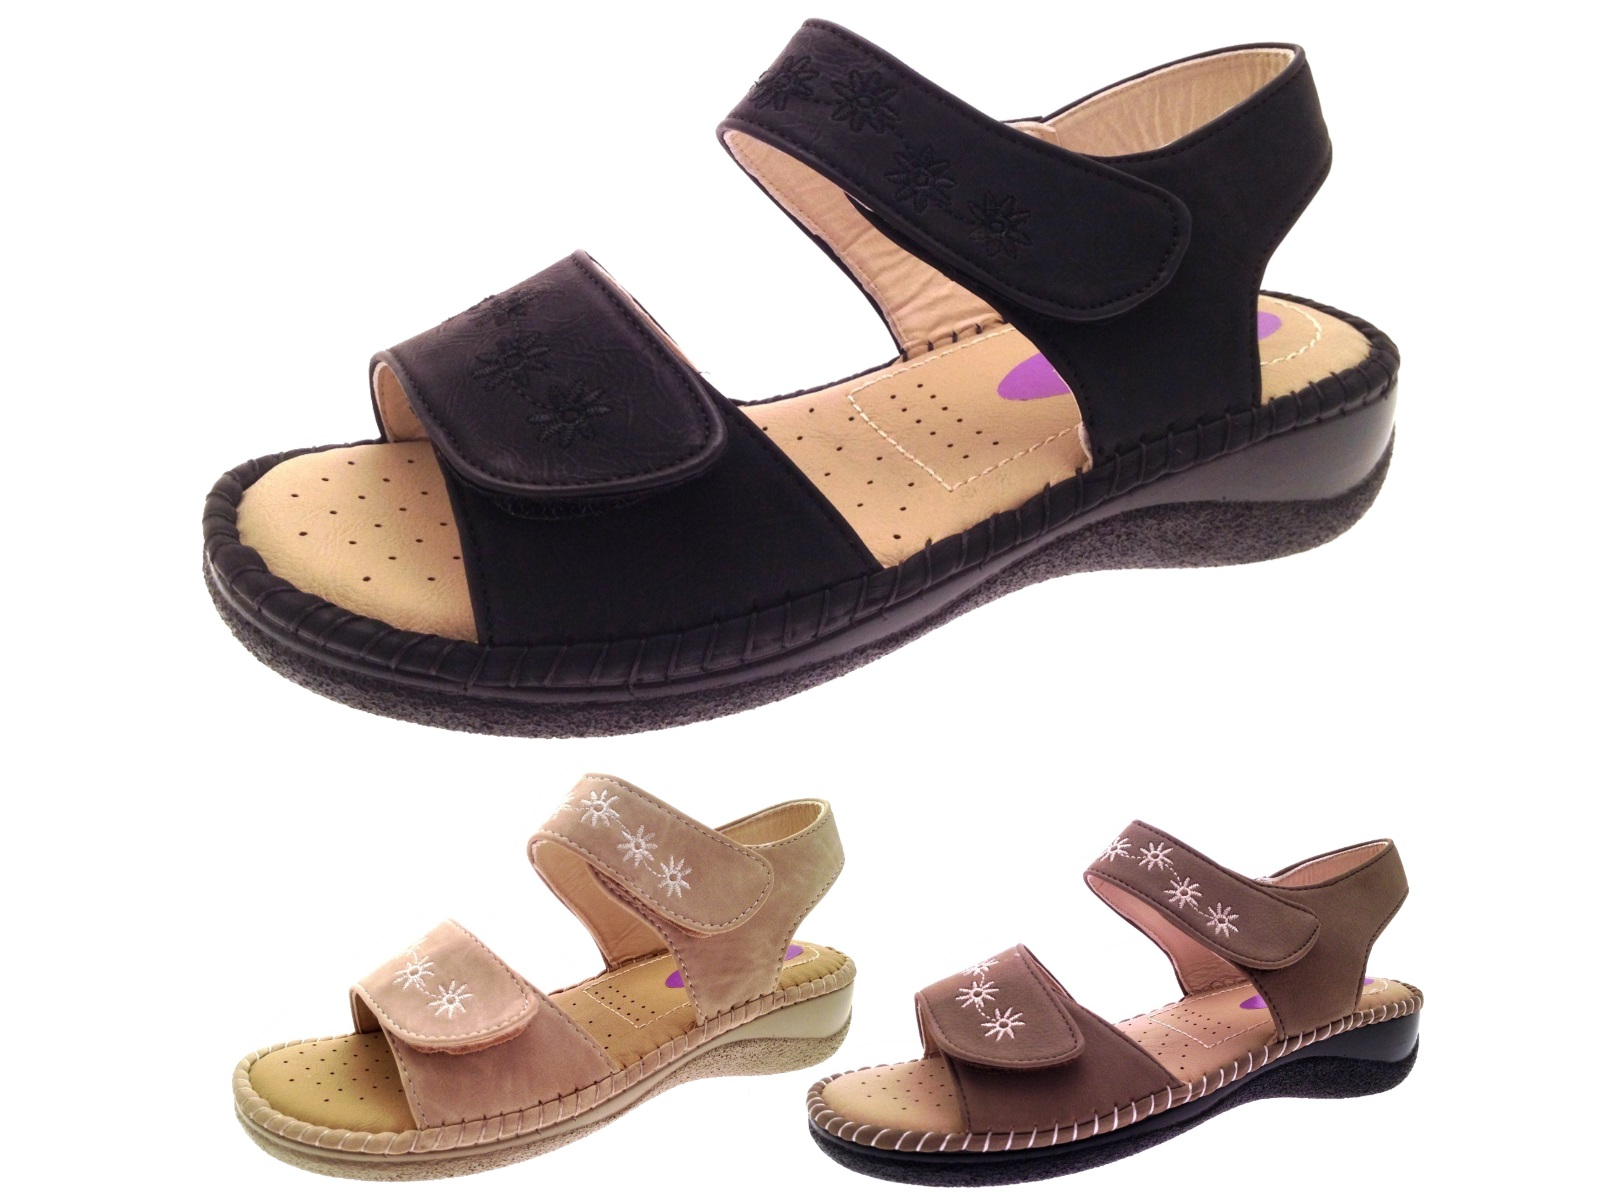 womens summer sandals cushioned wide adjustable straps